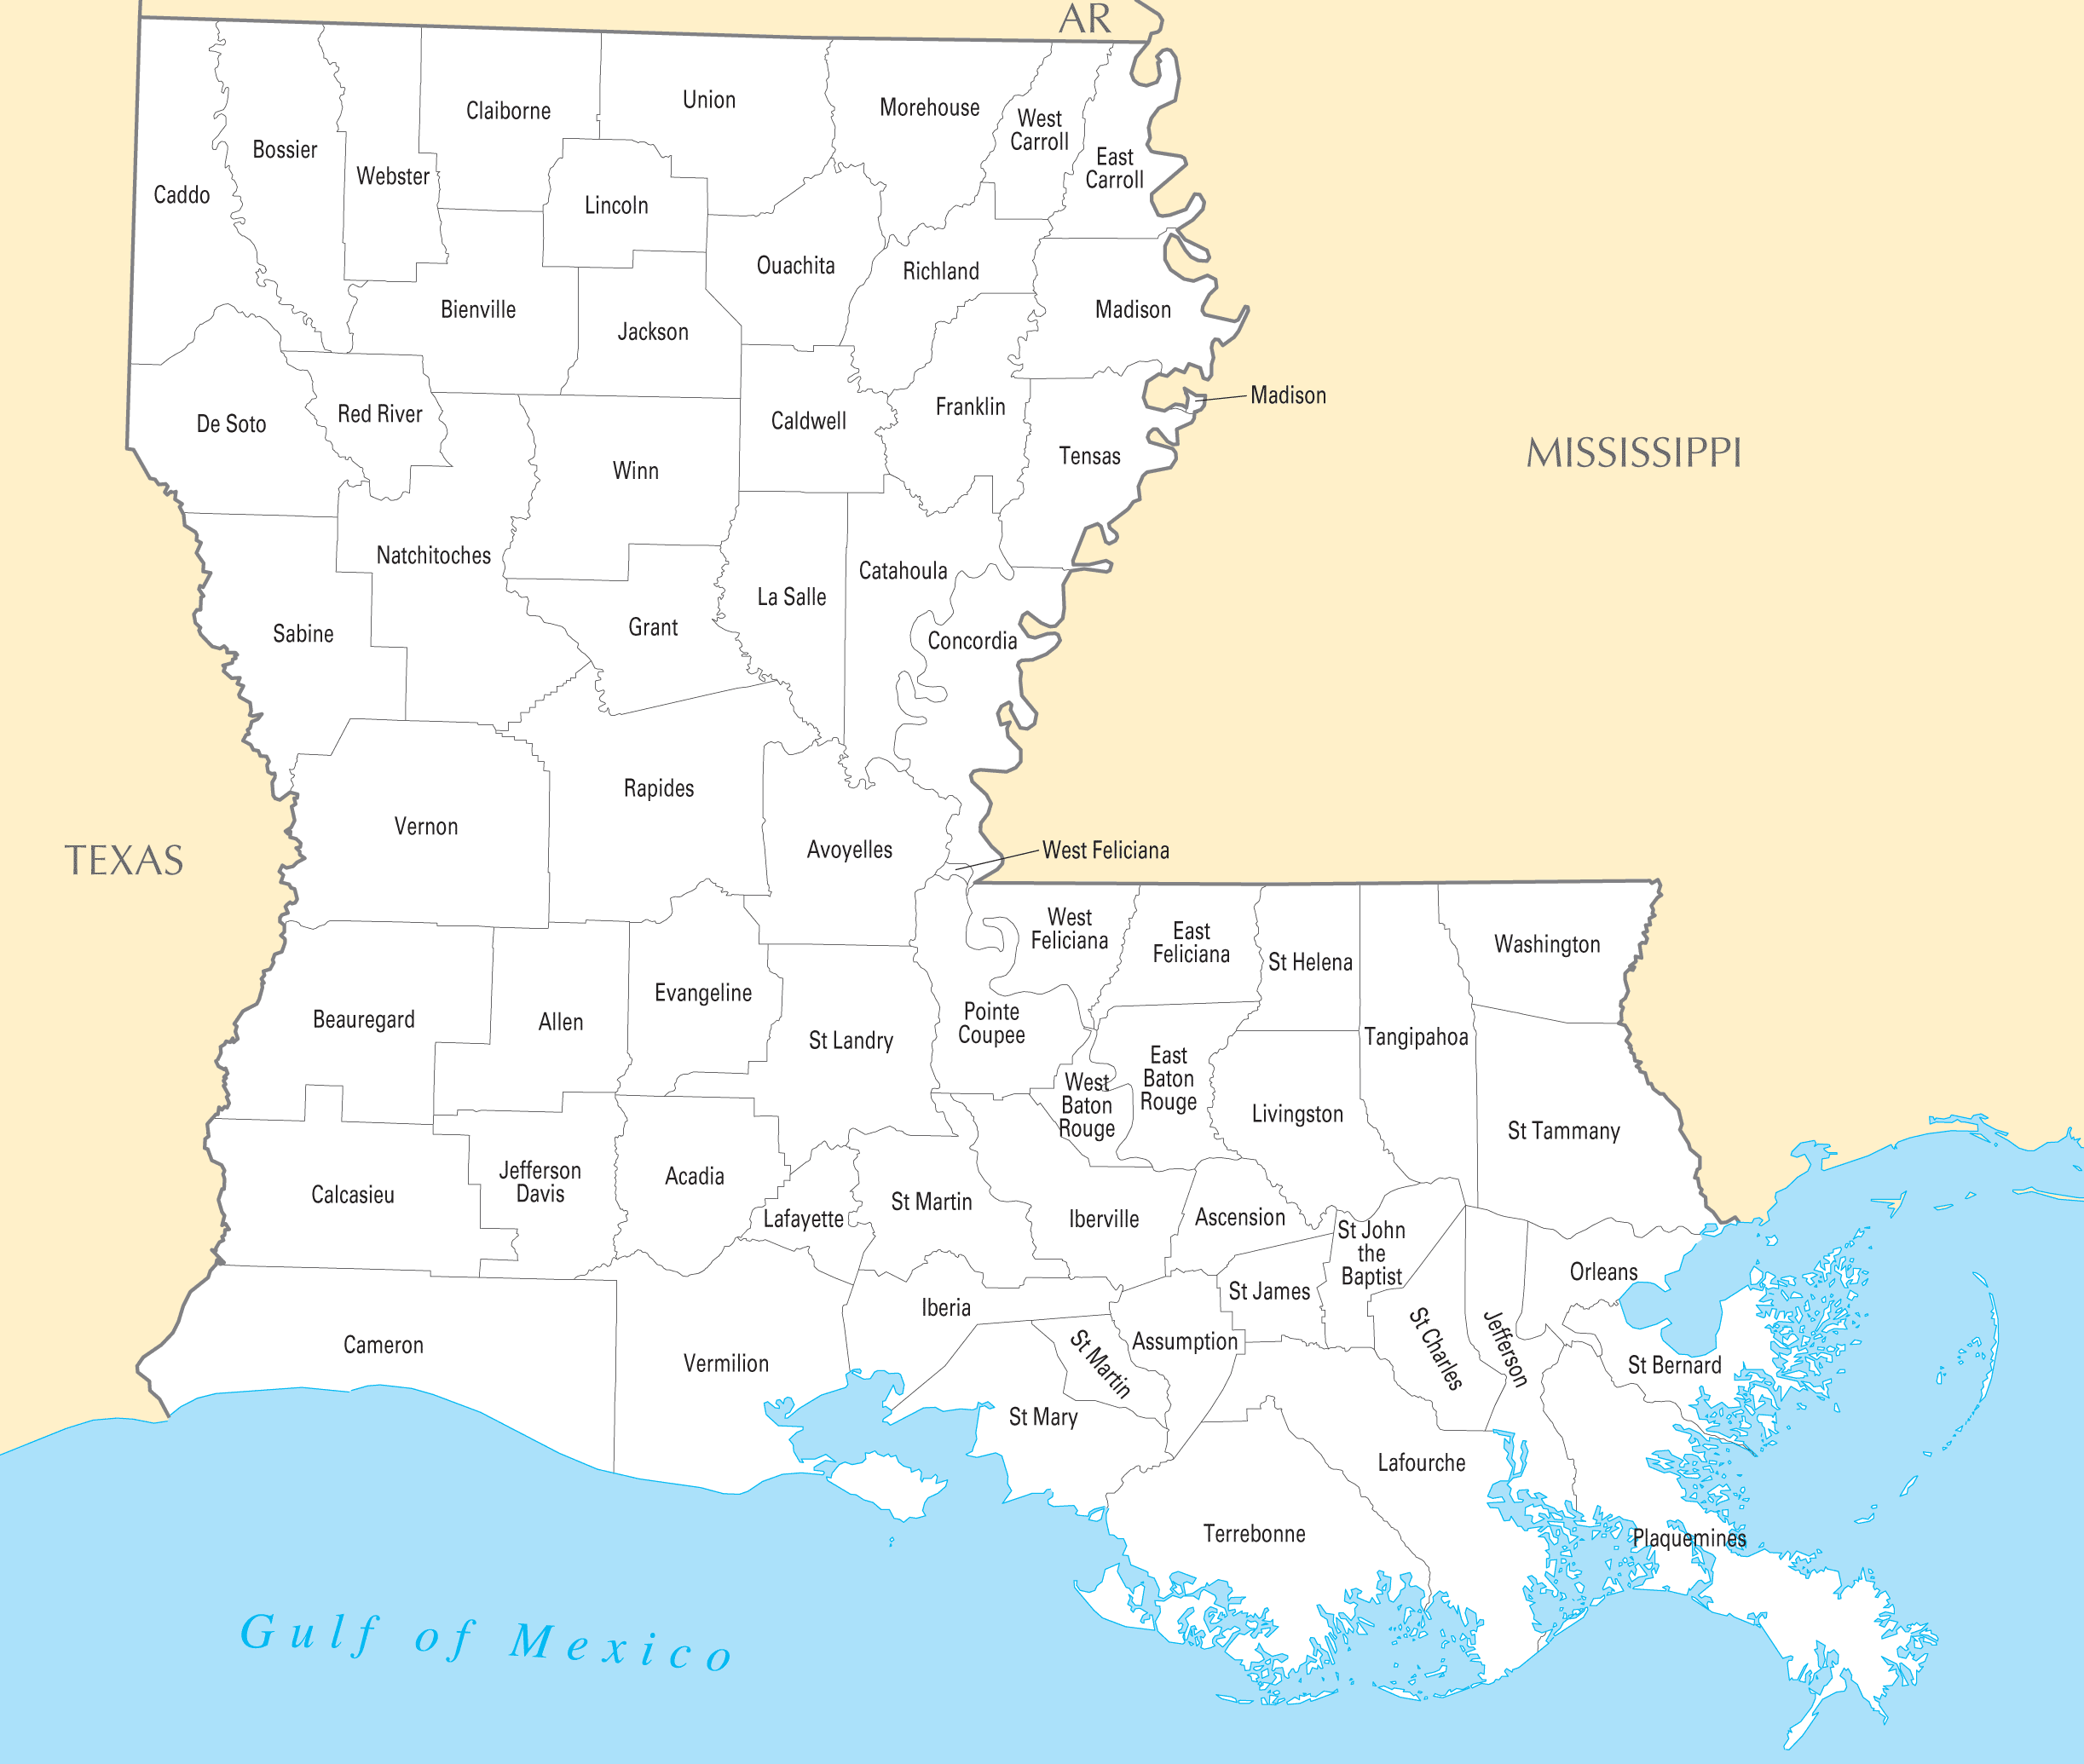 Louisiana County Map large map